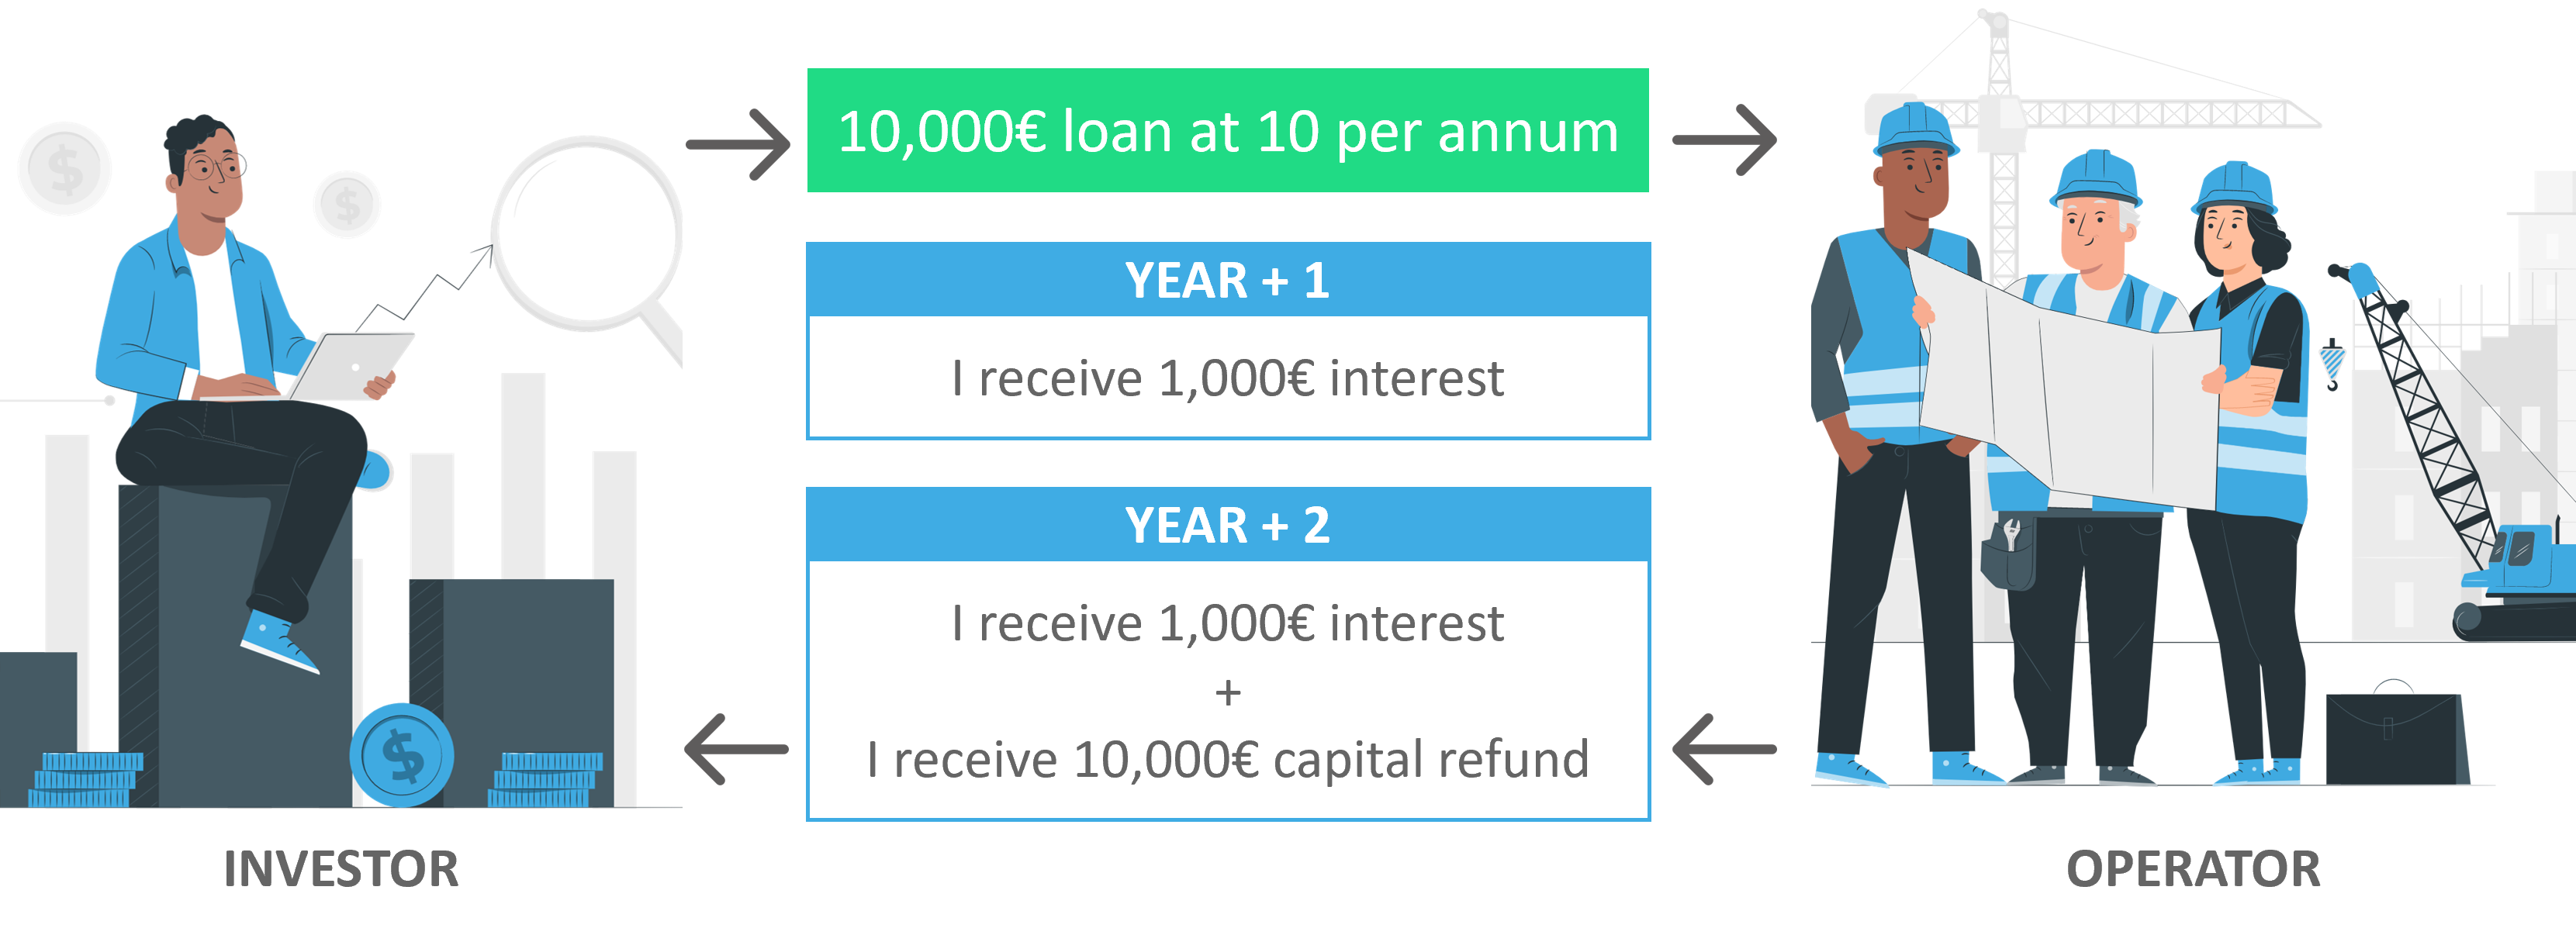 Example of a bond loan